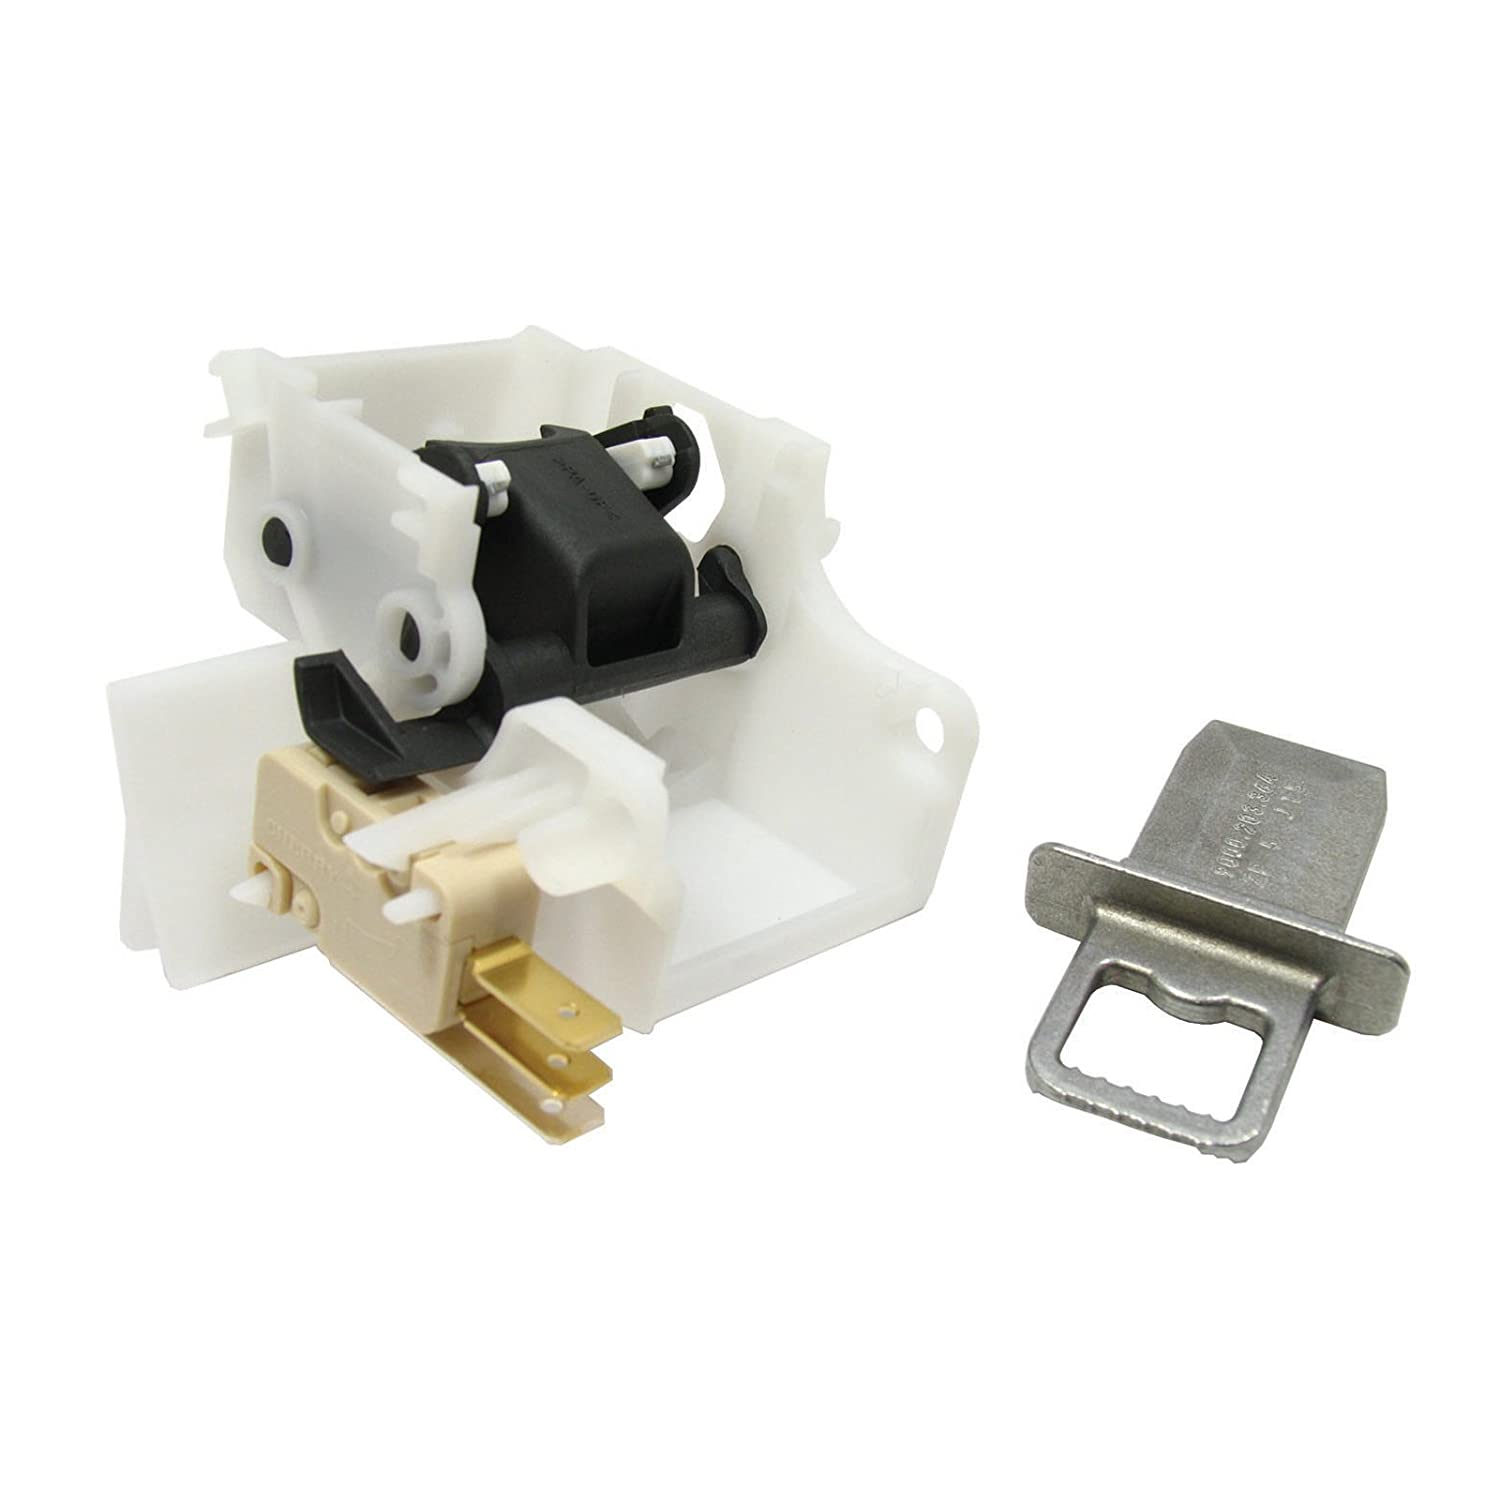 Siemens Dishwasher Door Latch Assembly